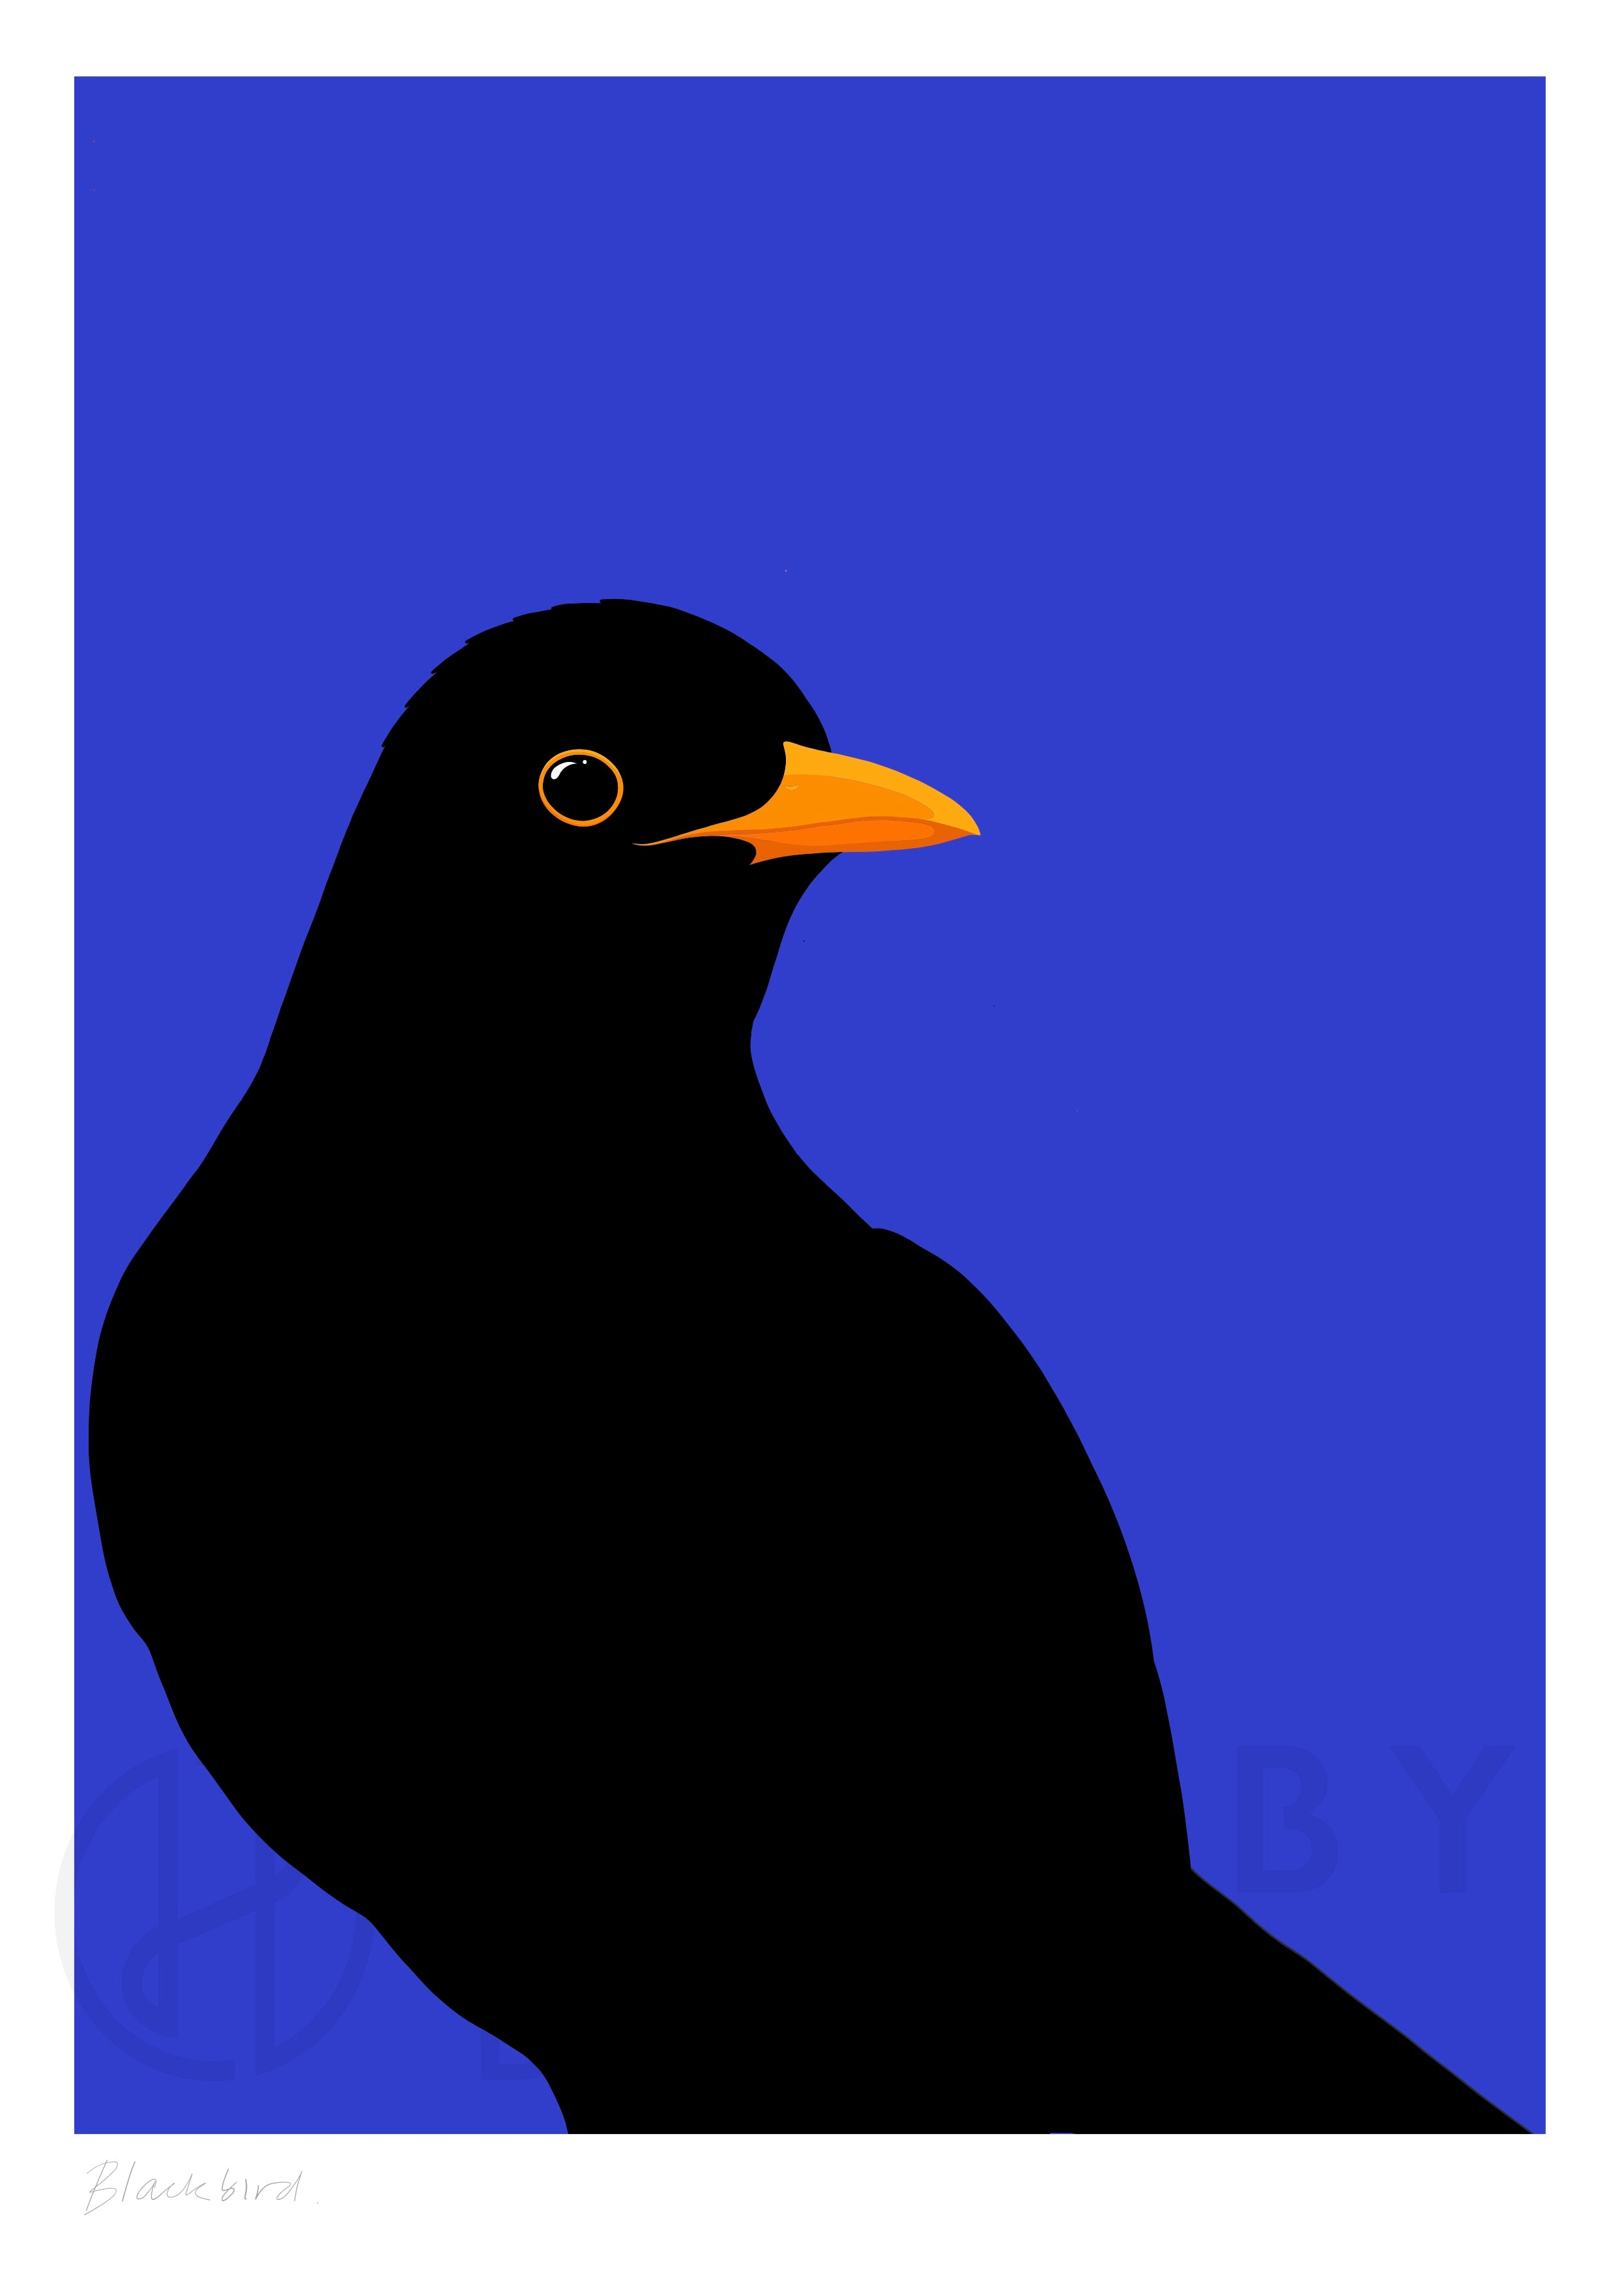 Watermarked art print of the blackbird